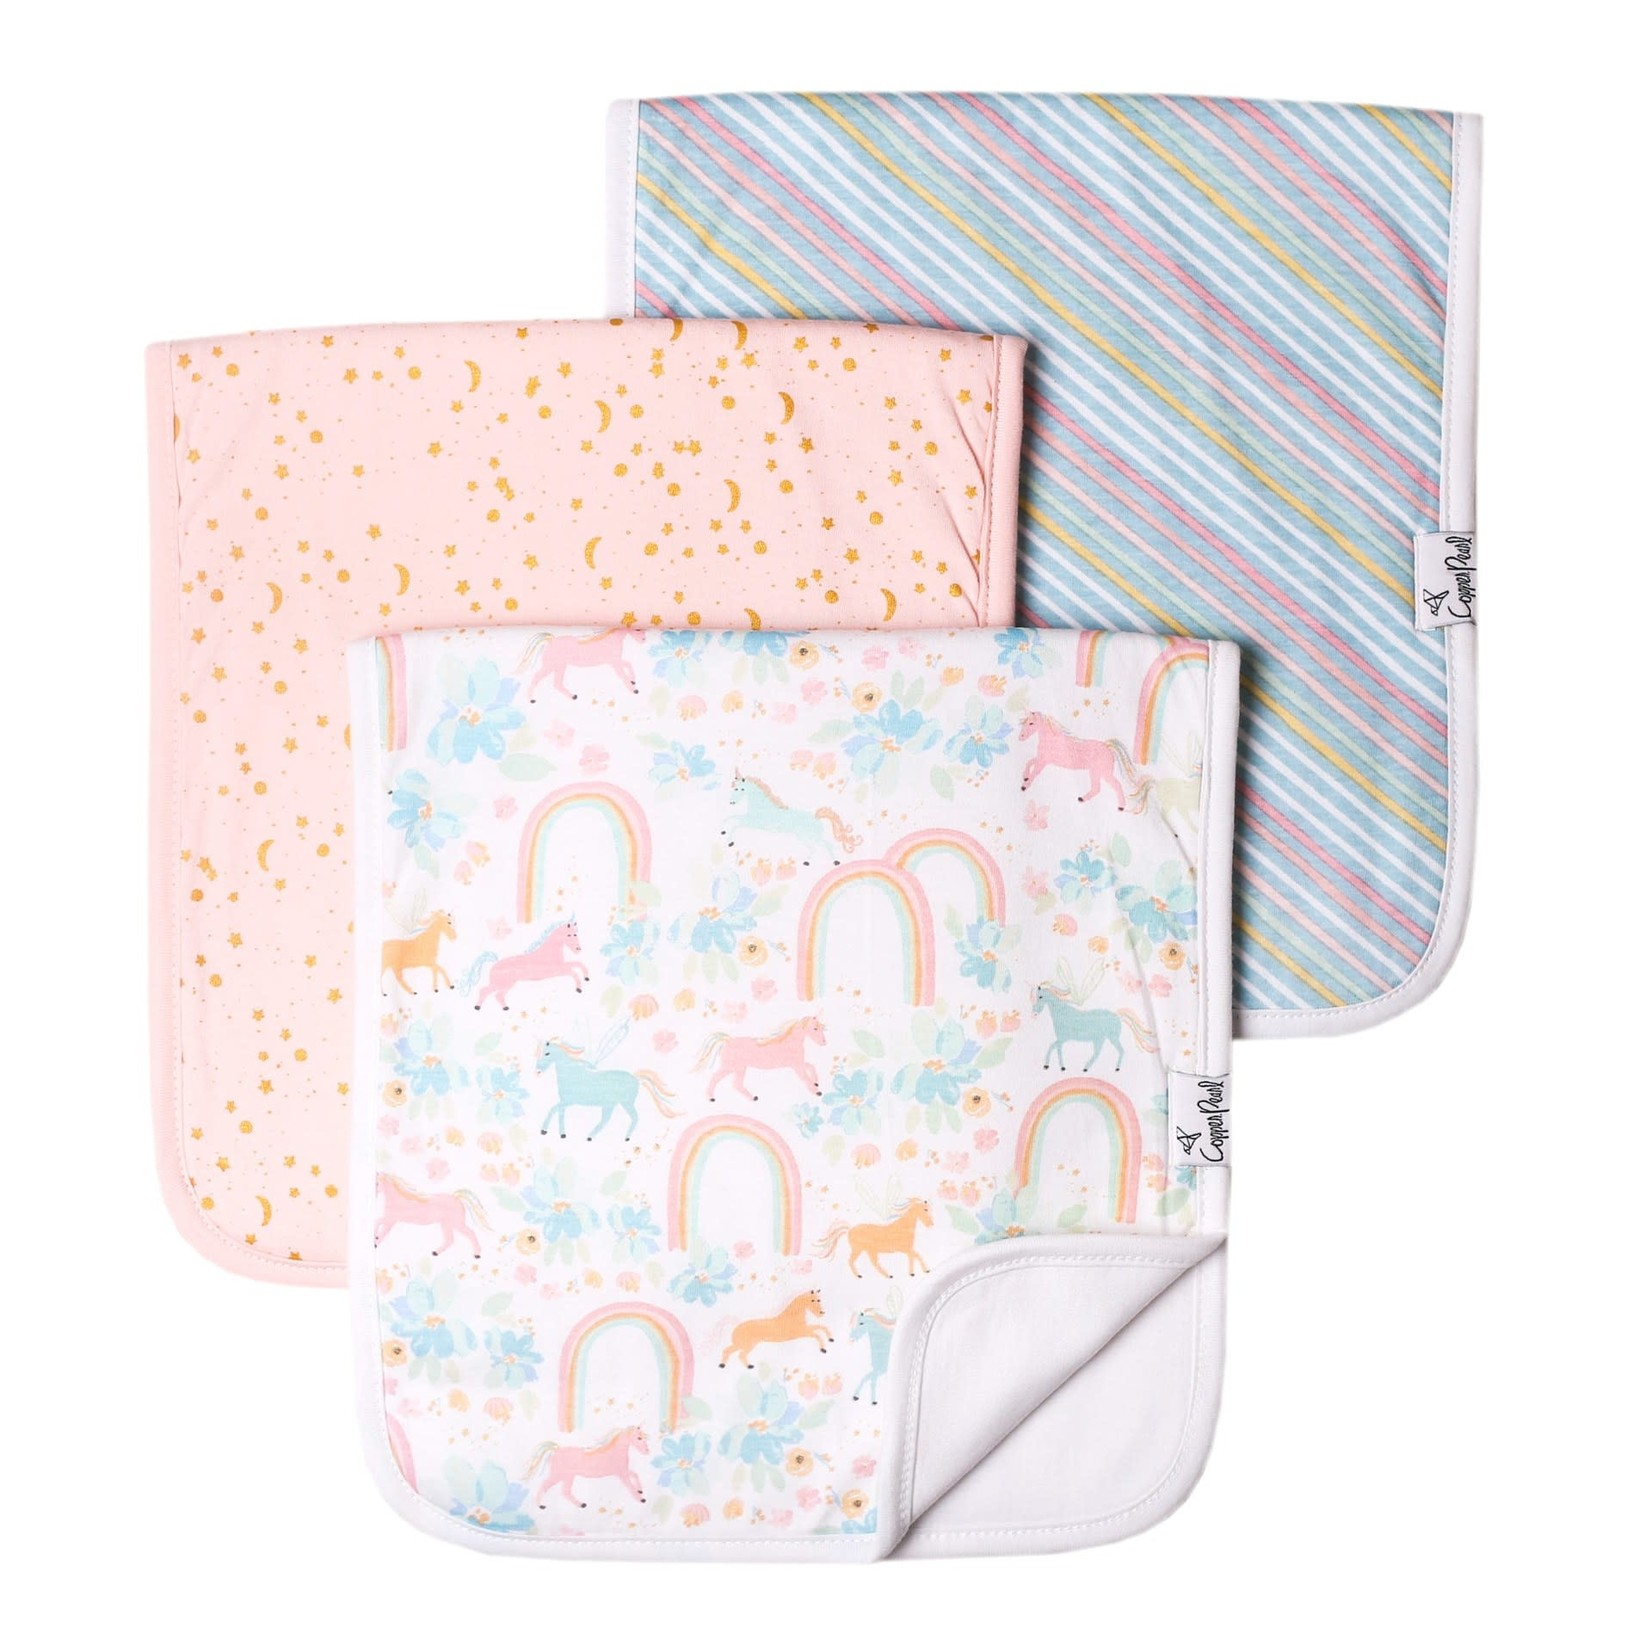 Copper Pearl Burp Cloths (3 pack) - Whimsy New